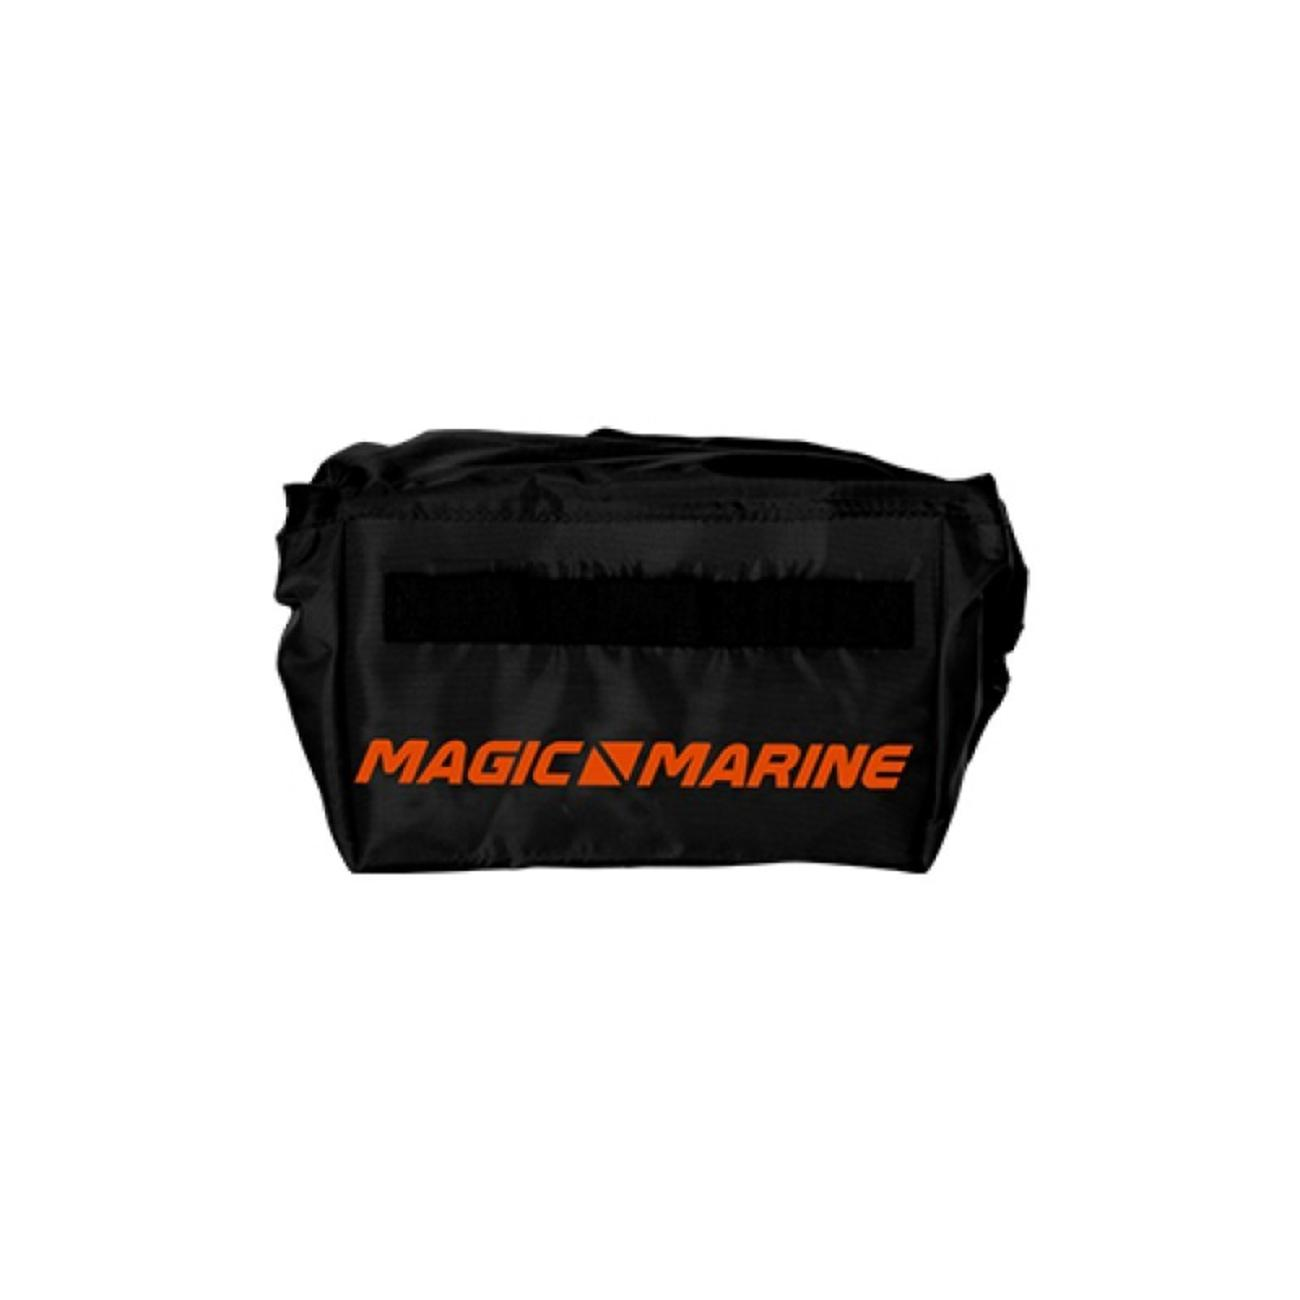 Waterproof Bag Lightweight 5L 防水バッグ